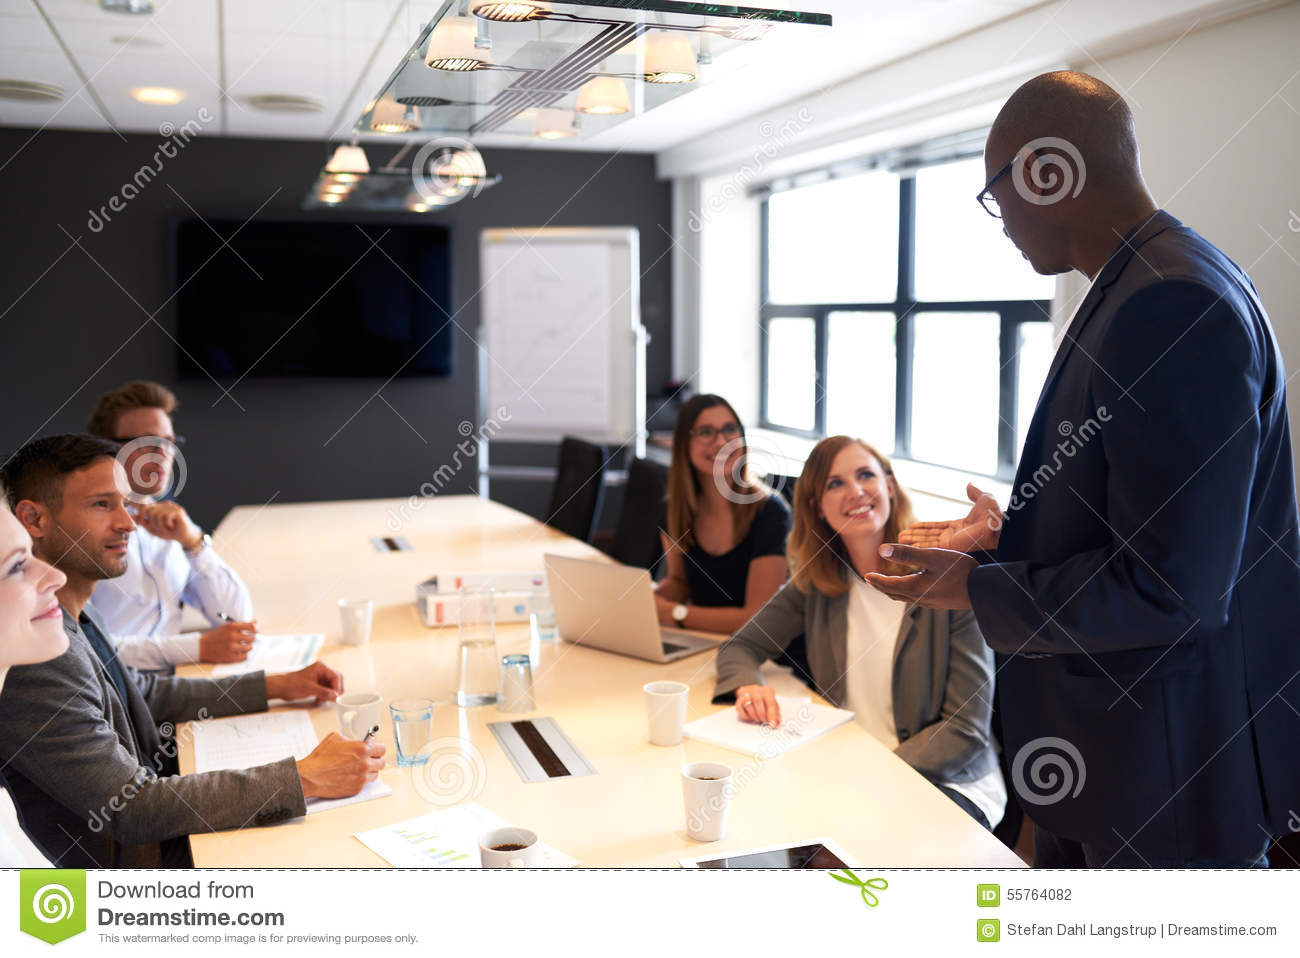 Group of executives sitting in conference room